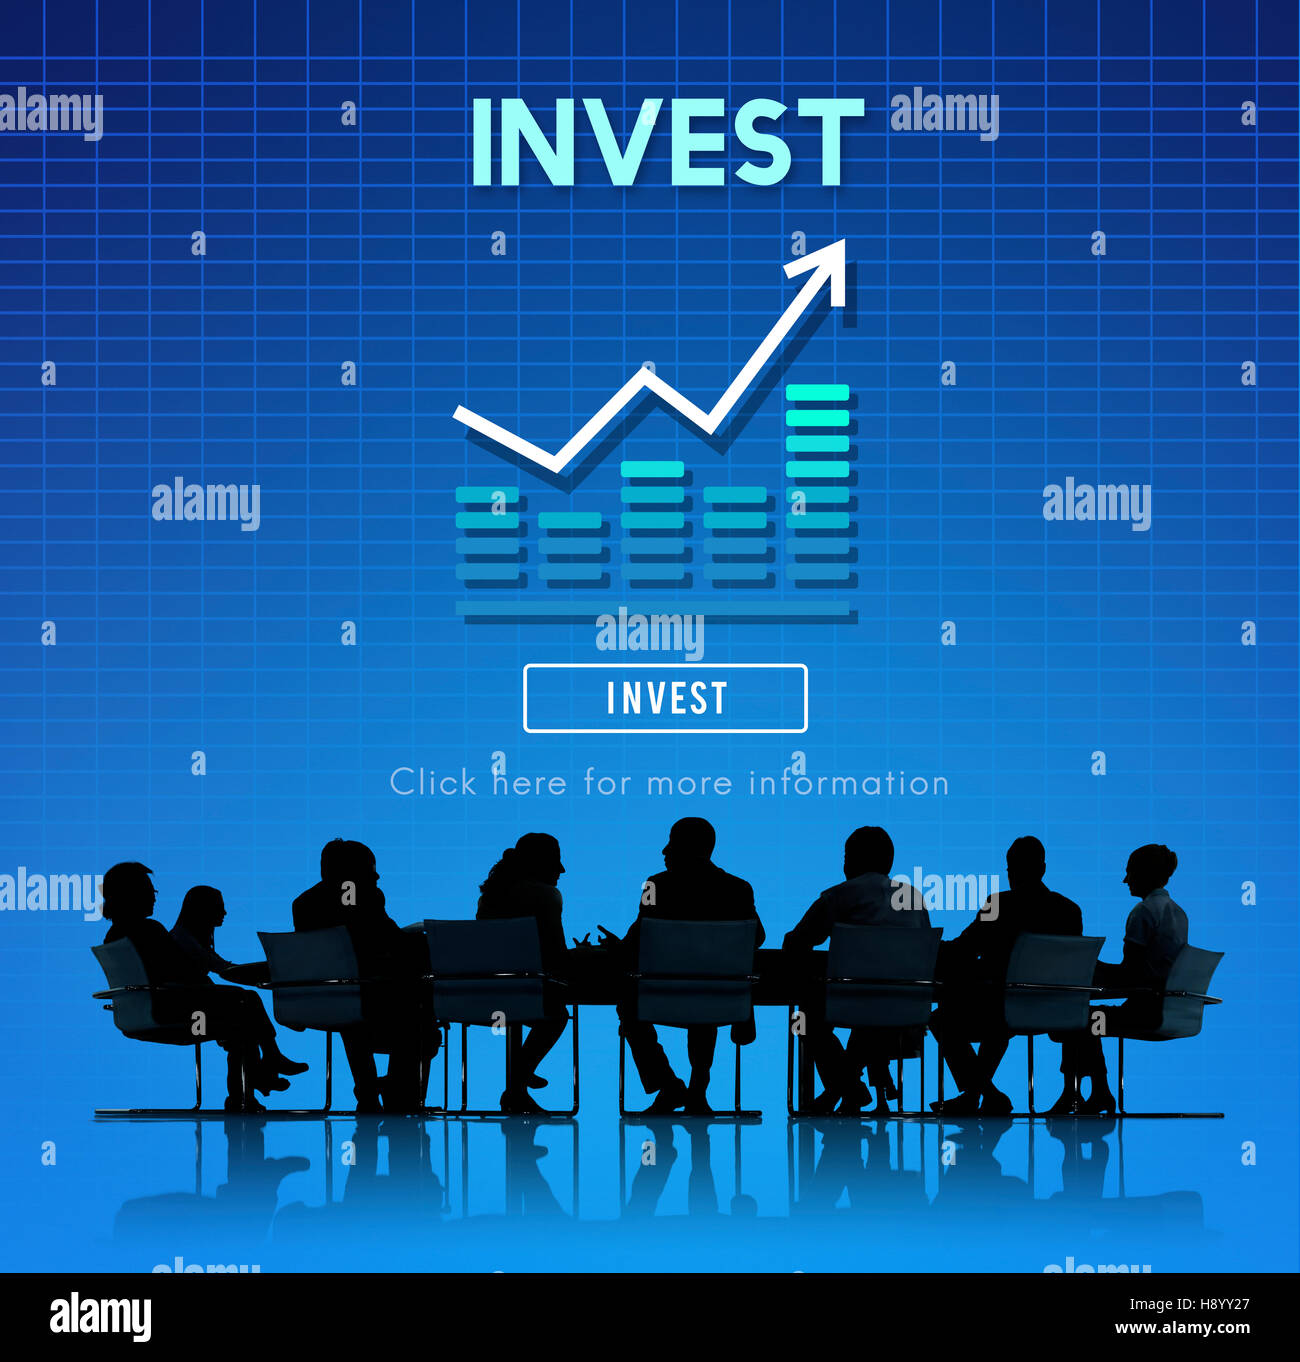 Invest Investment Financial Income Profit Costs Concept - Stock Image